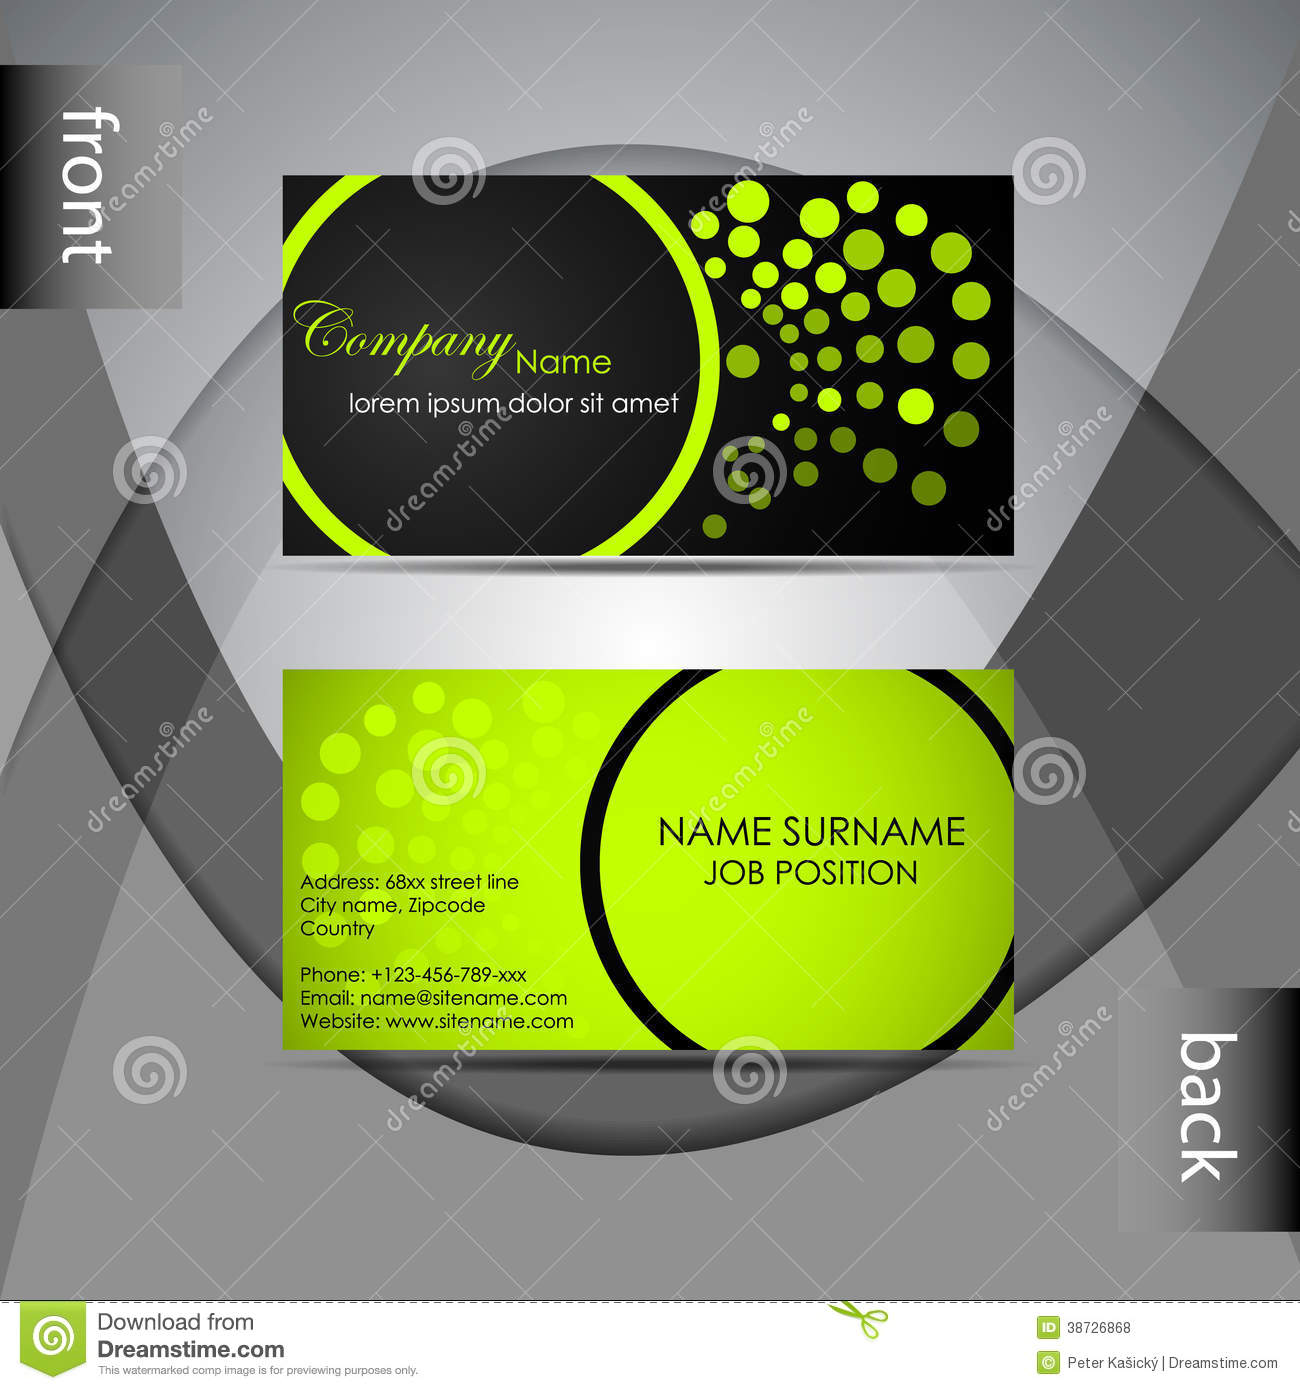 Business Card Template Or Visiting Card Set Stock Vector - Image ...